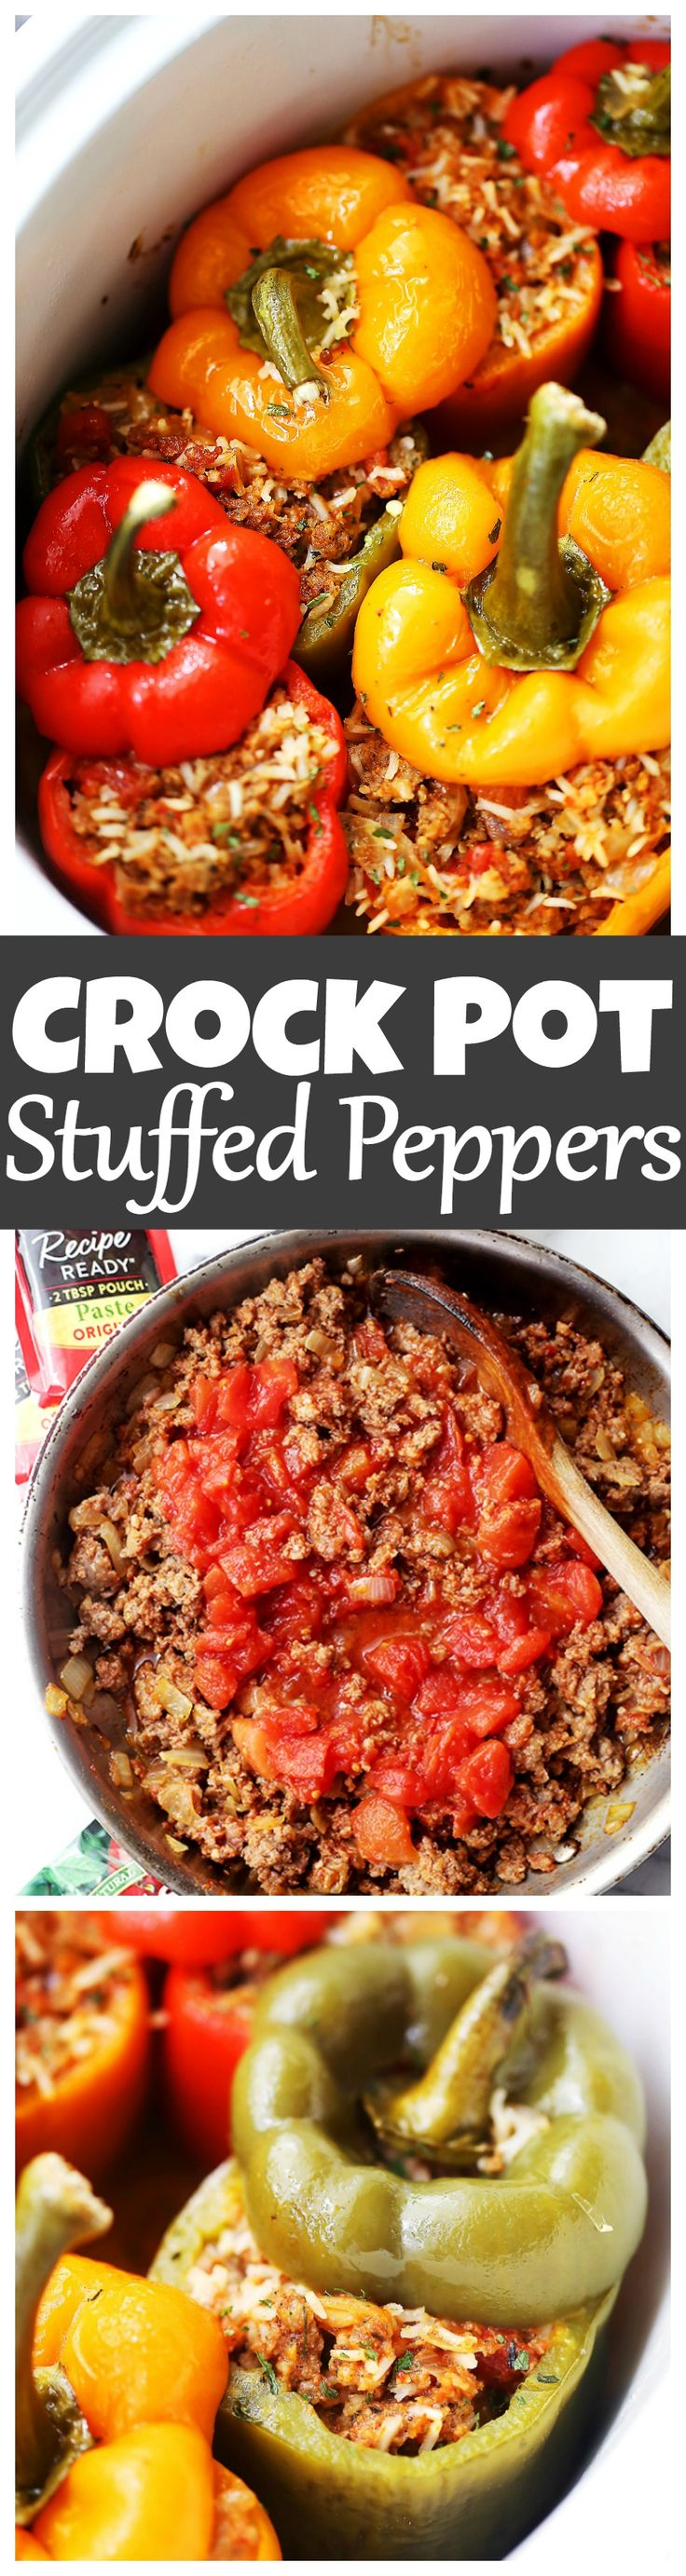 Crock Pot Stuffed Peppers - Loaded with spicy pork sausage, rice and tomatoes, these hearty and flavor-loaded peppers are the easiest and most perfect meal to serve to your family, and are also great for game day parties! #ad with @Hunt's Tomatoes #HuntsDifference